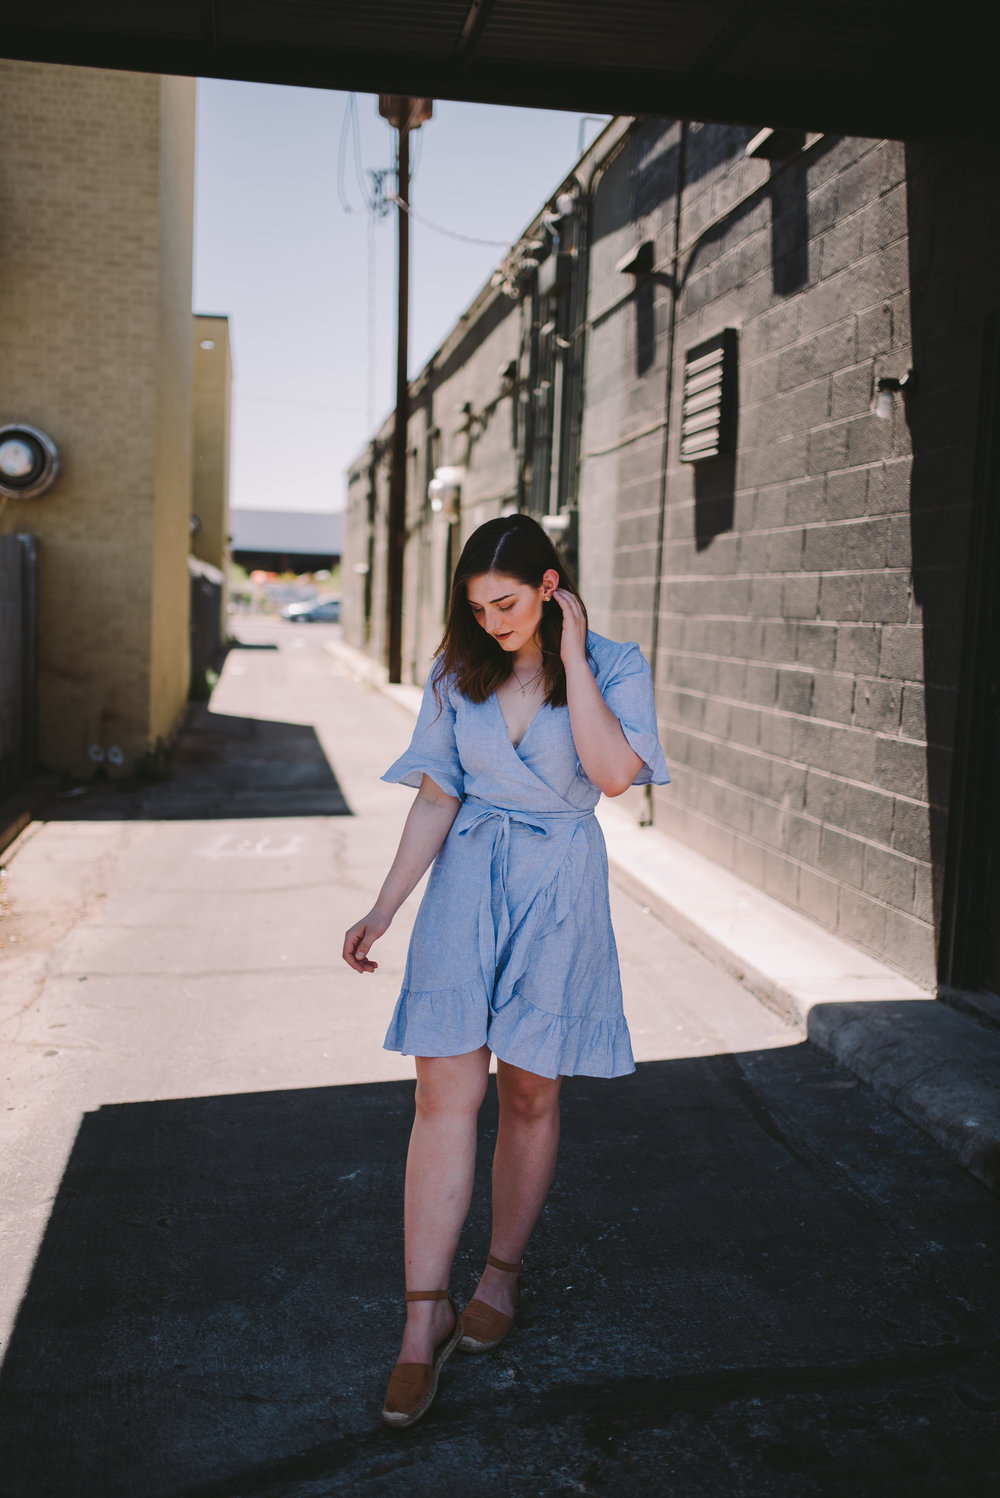 About the look | In frame: Emily Kidd | Dress:  Gap  | Shoes:  H&M